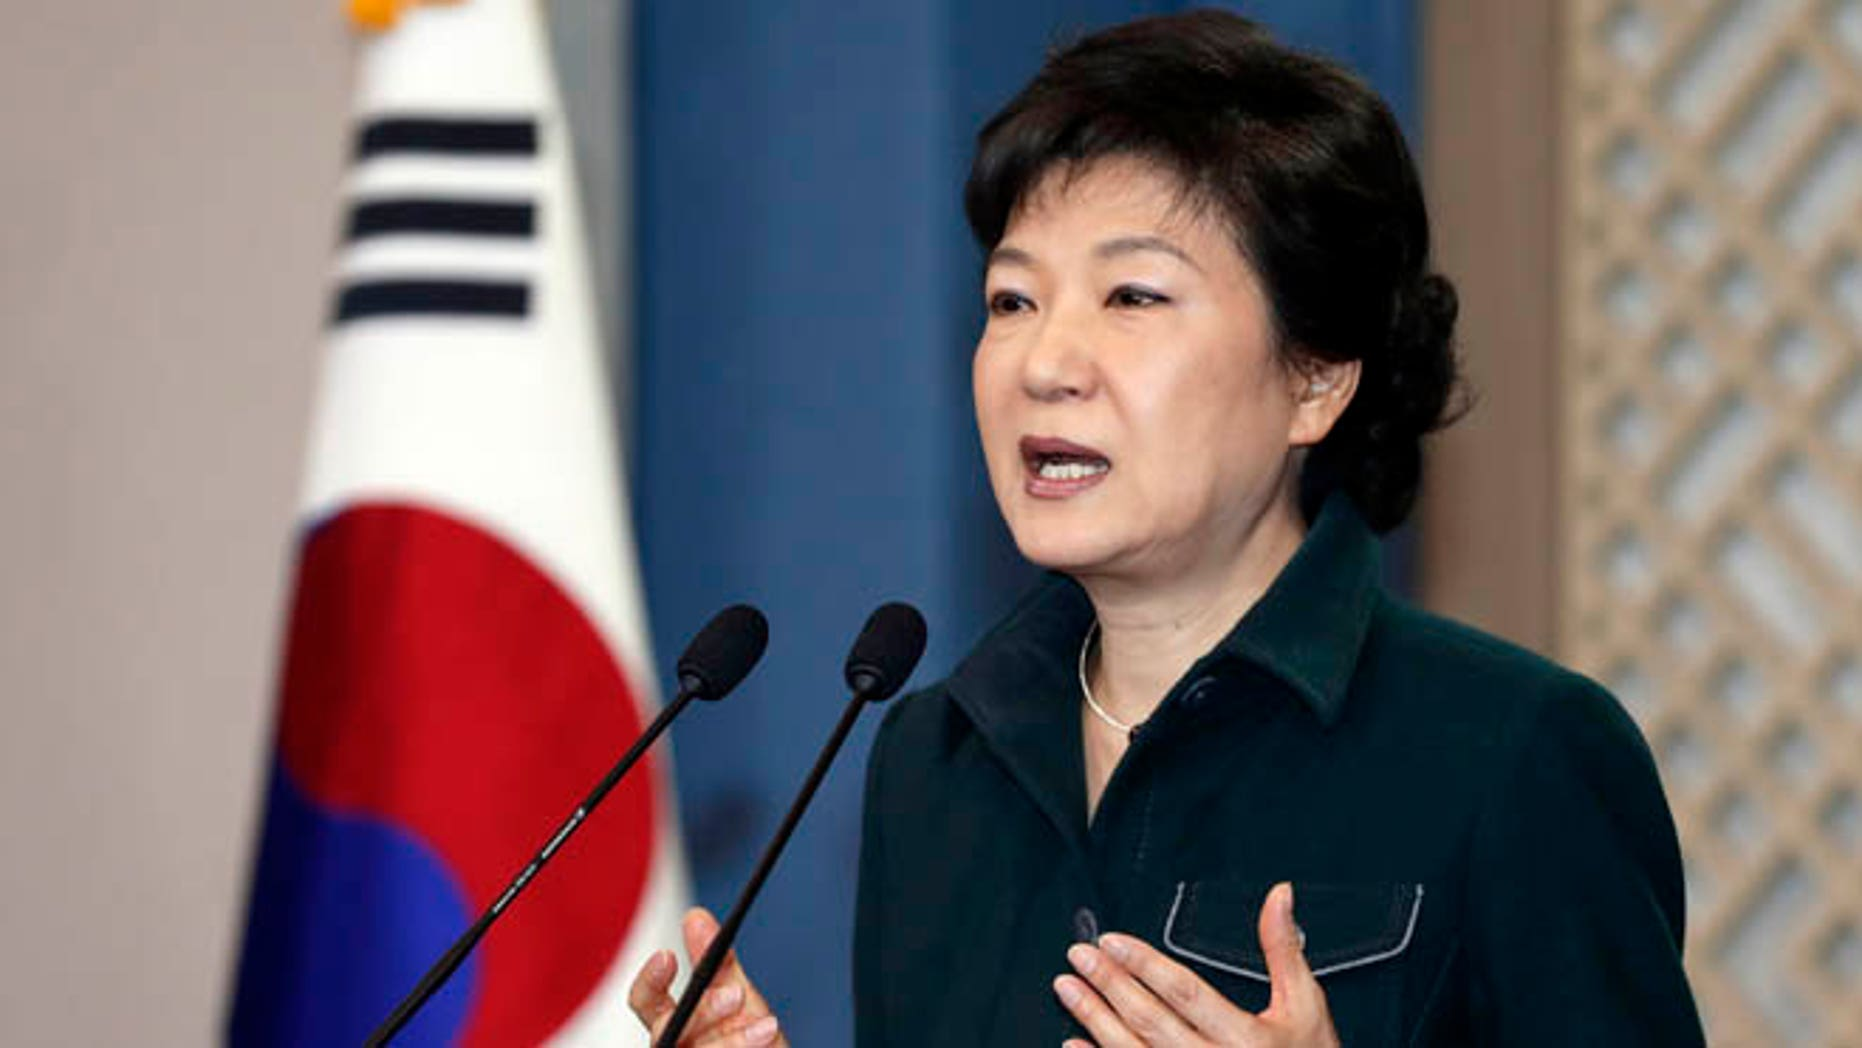 March 4, 2013: South Korea's President Park Geun-hye speaks to the nation at the presidential Blue House in Seoul.